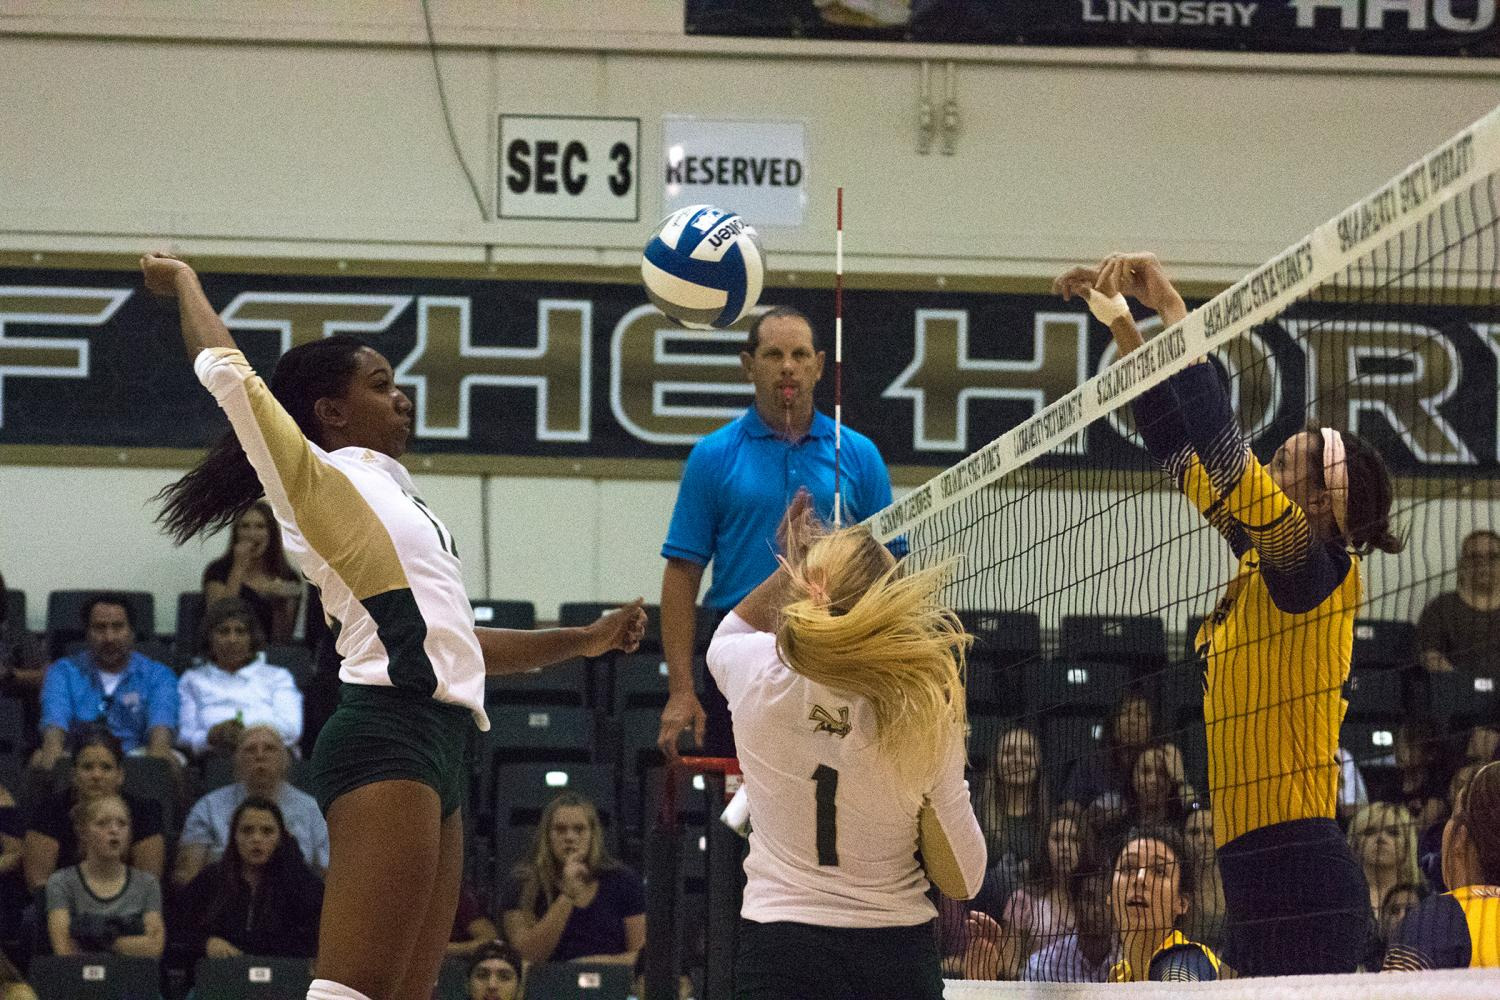 Sacramento State junior middle blocker Brie Gathright jumps to spike the ball against Northern Colorado Saturday, Oct. 7 at Colberg Court. Sac State defeated Northern Colorado 28-26, 25-22 and 25-17 in three sets.